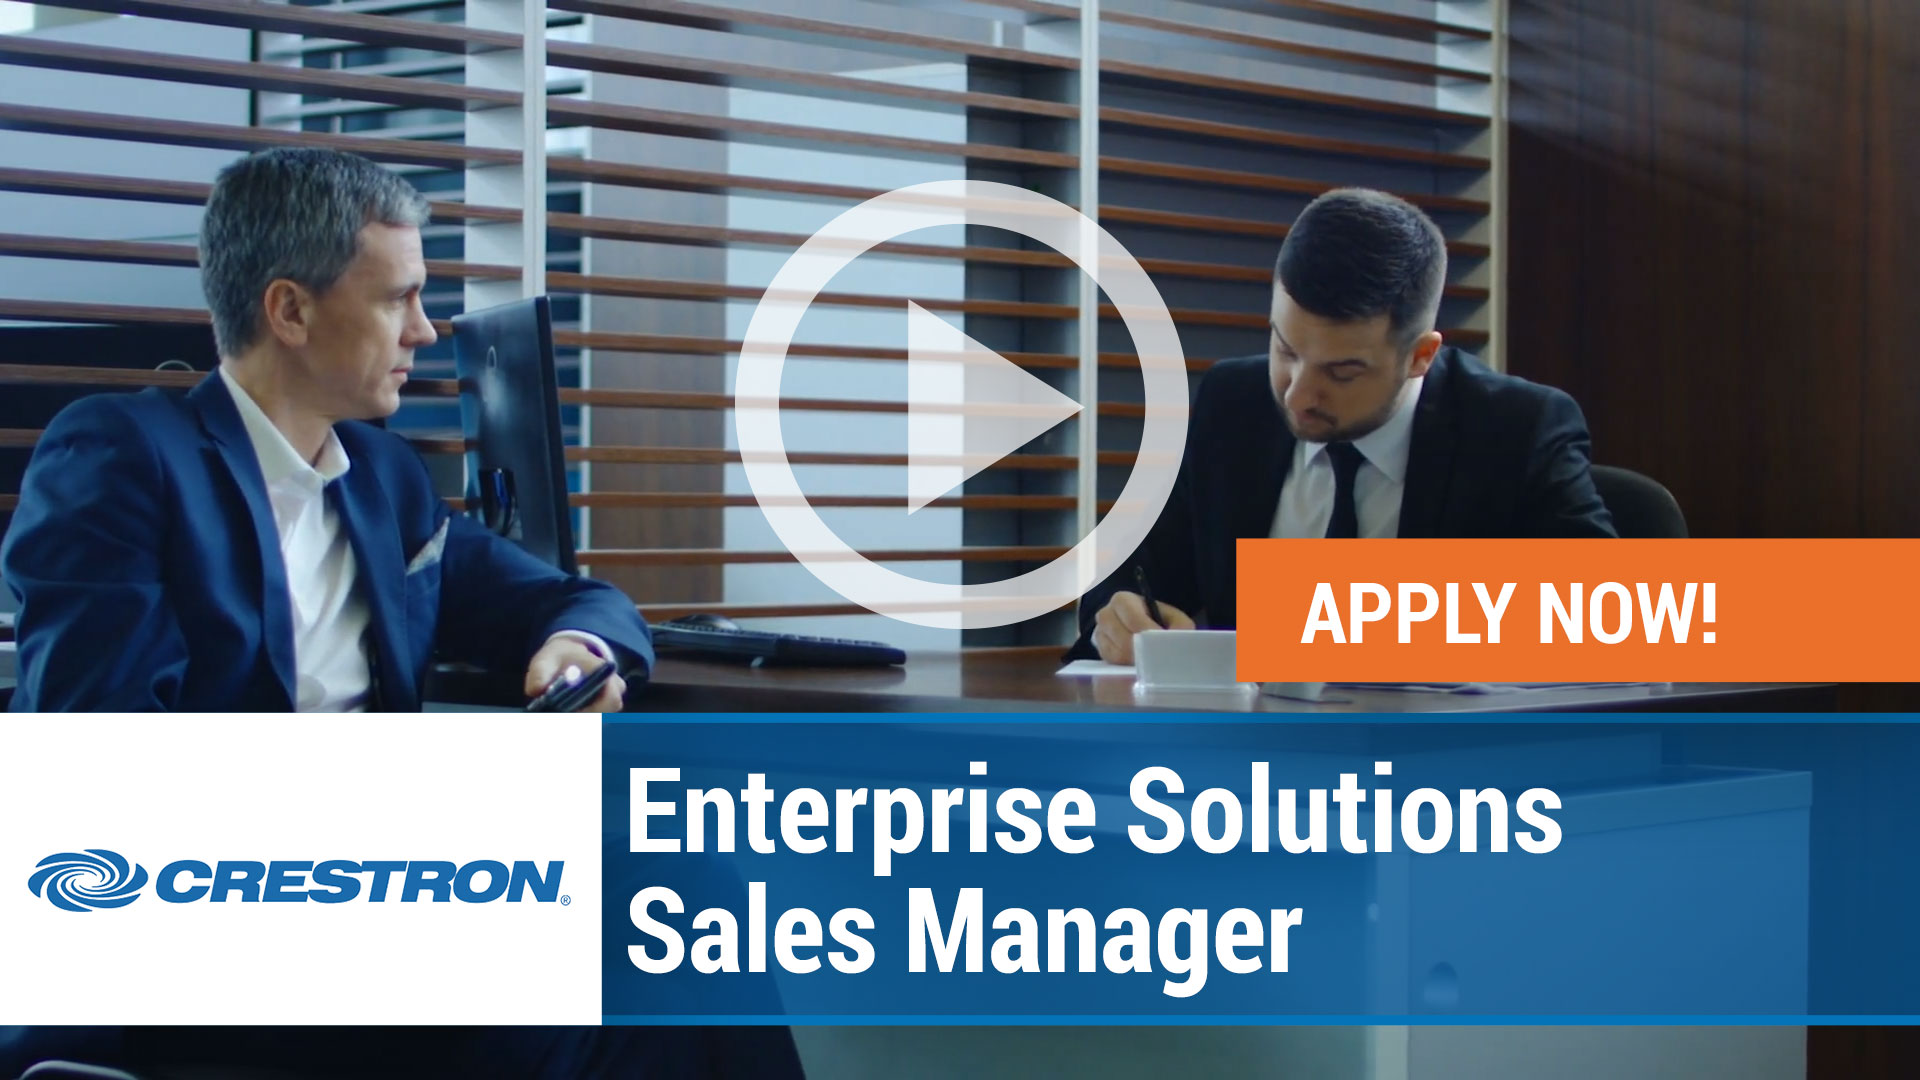 Watch our careers video for available job opening Enterprise Solutions Sales Manager in San Francisco, CA, USA